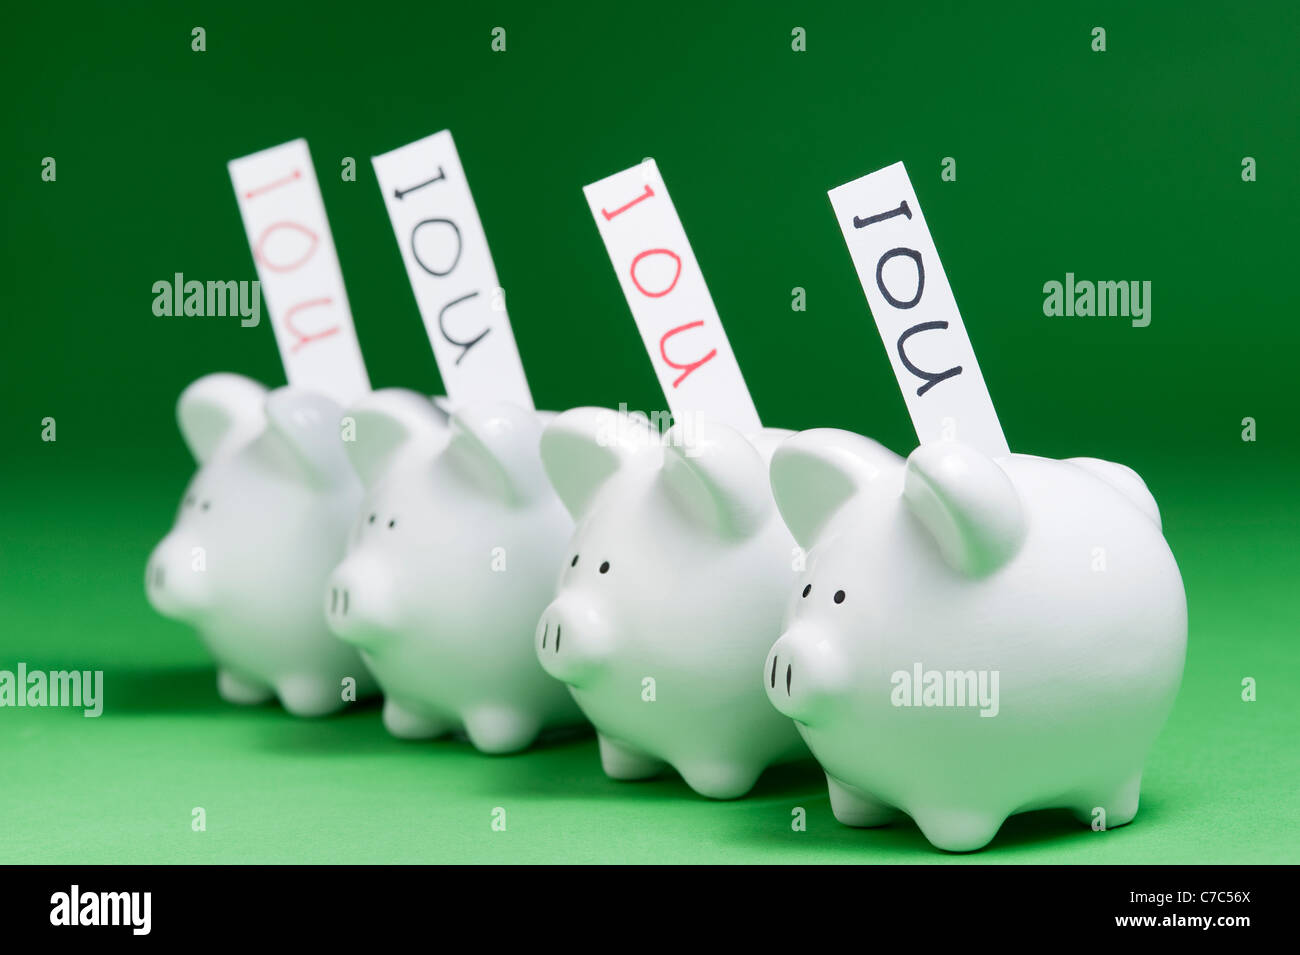 Group of piggy banks with IOU's coming out of coin slots - Stock Image